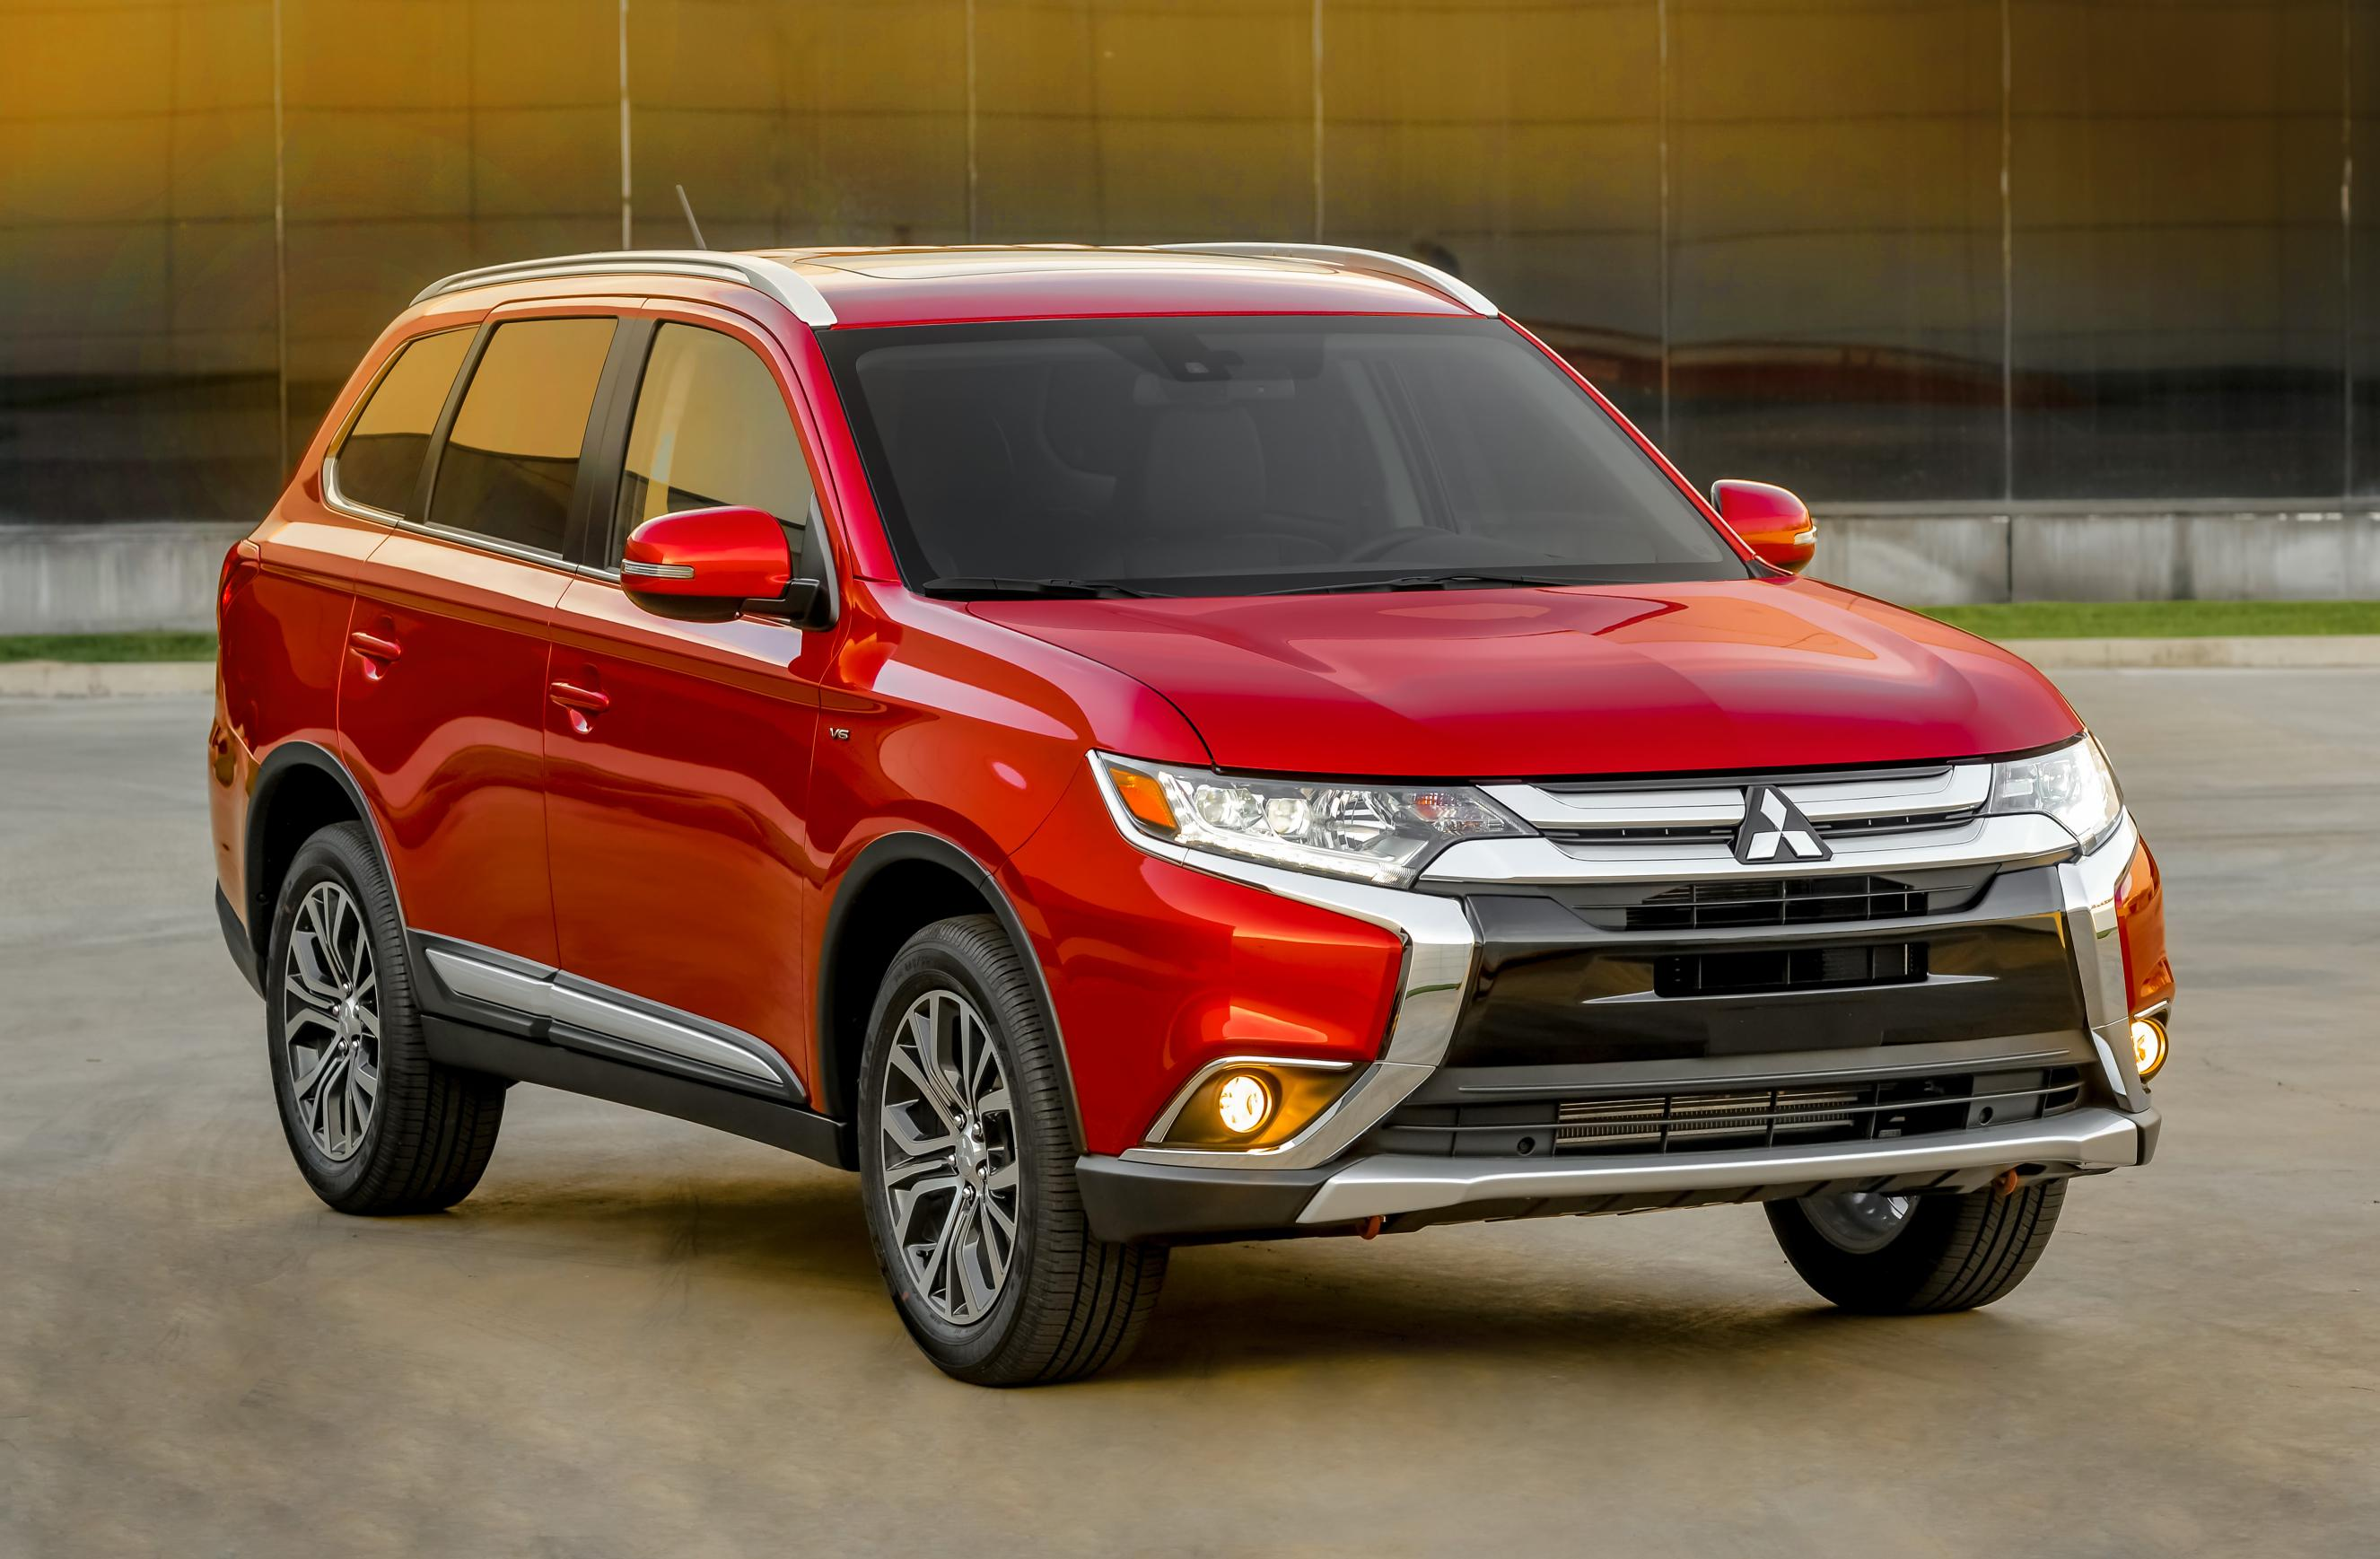 2016 mitsubishi asx pictures information and specs auto. Black Bedroom Furniture Sets. Home Design Ideas